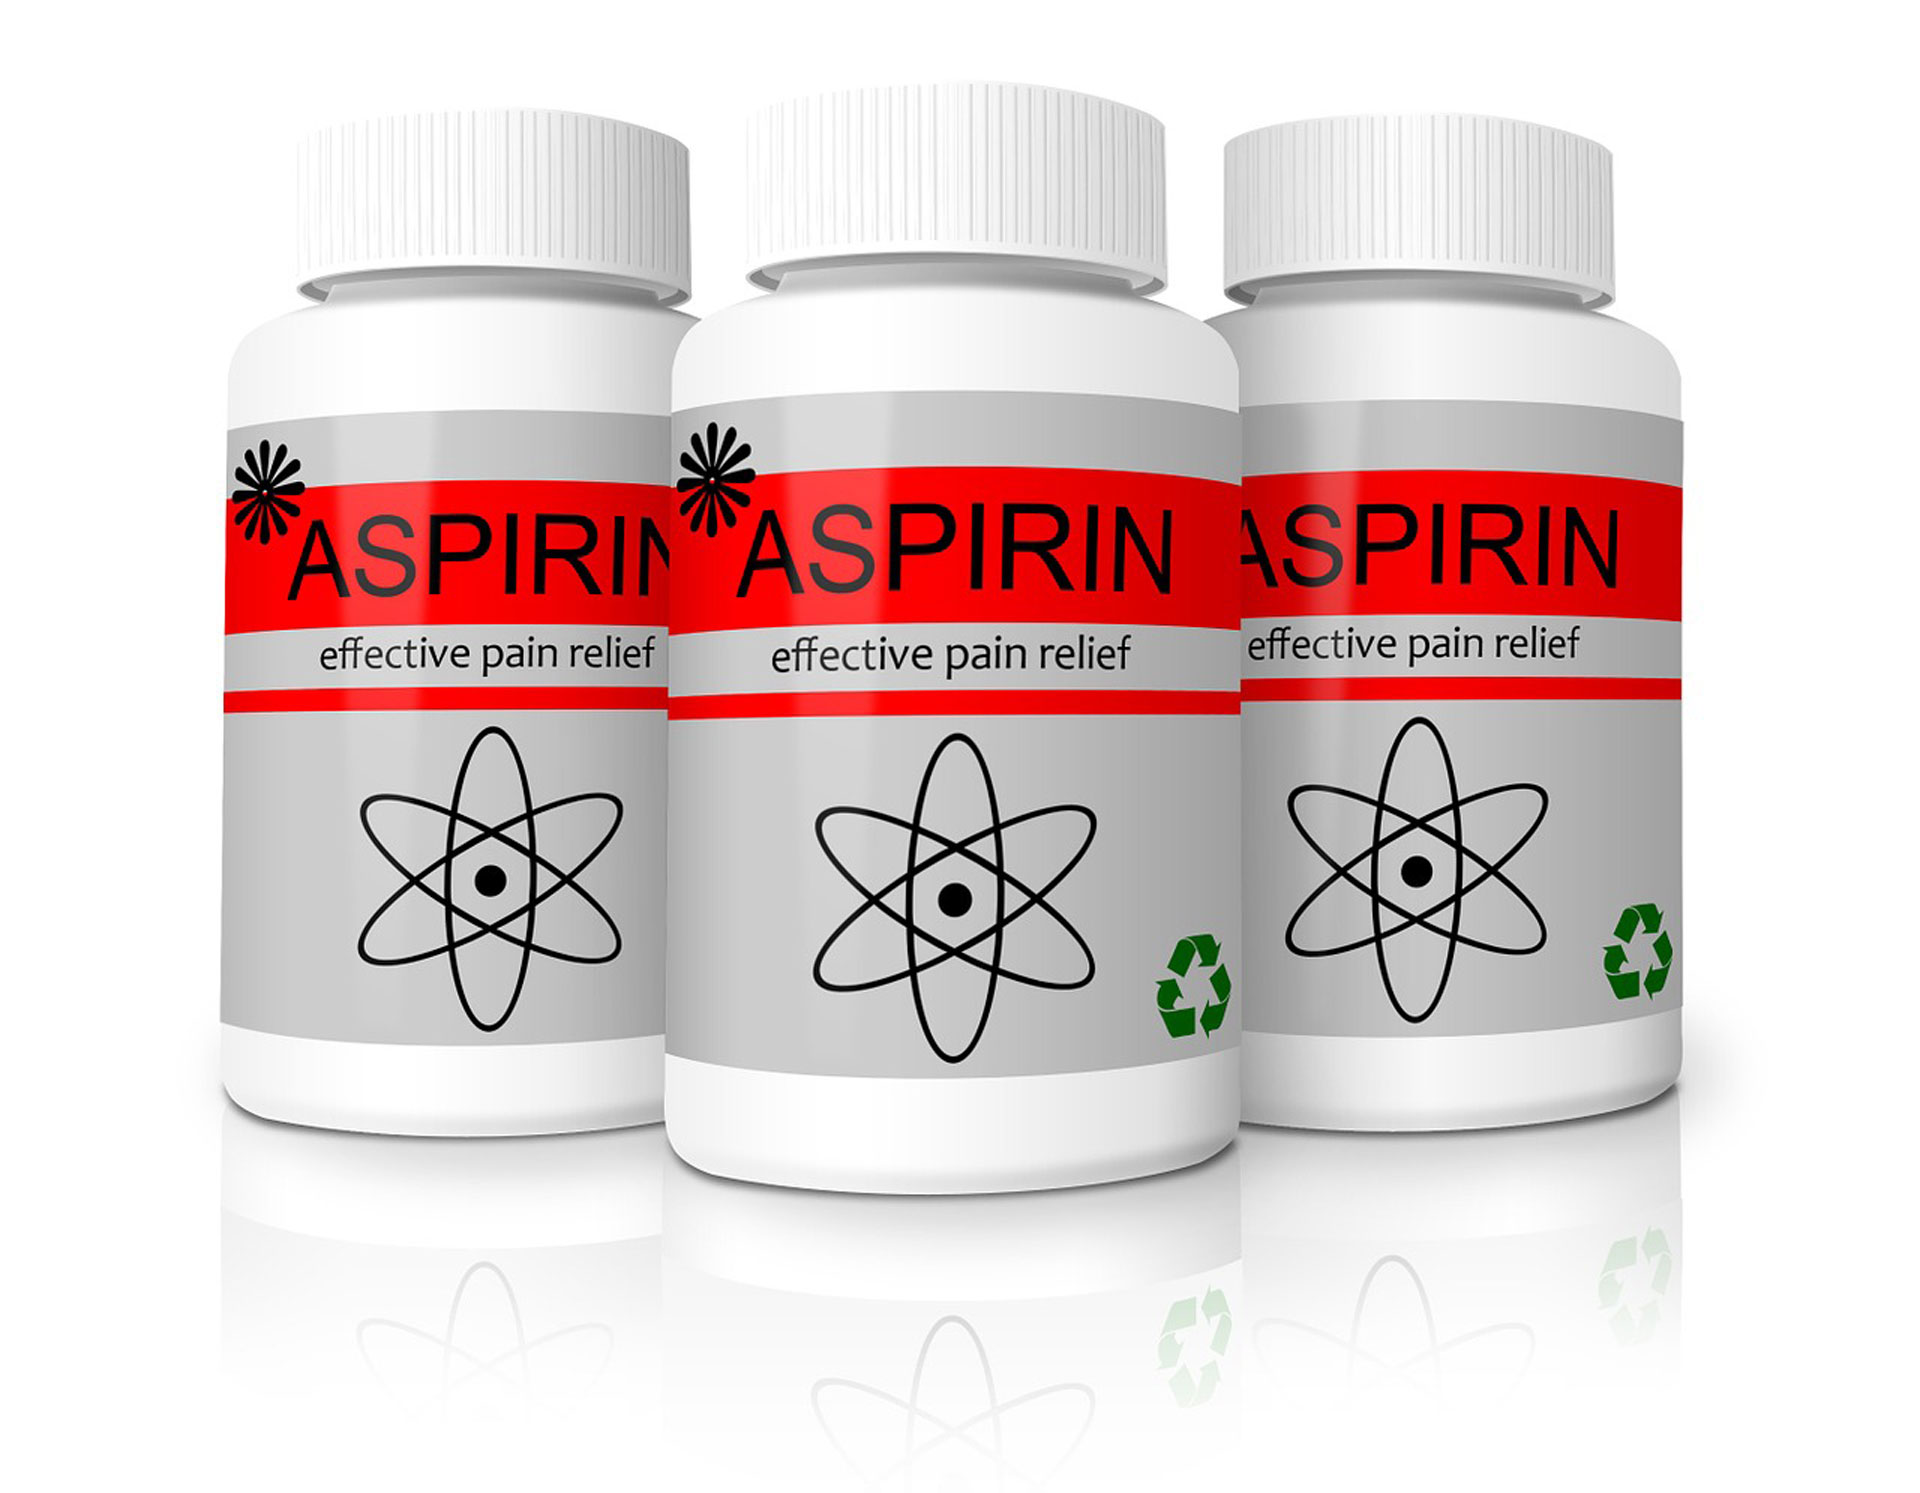 Kansas City Allergy & Asthma - Aspirin Test